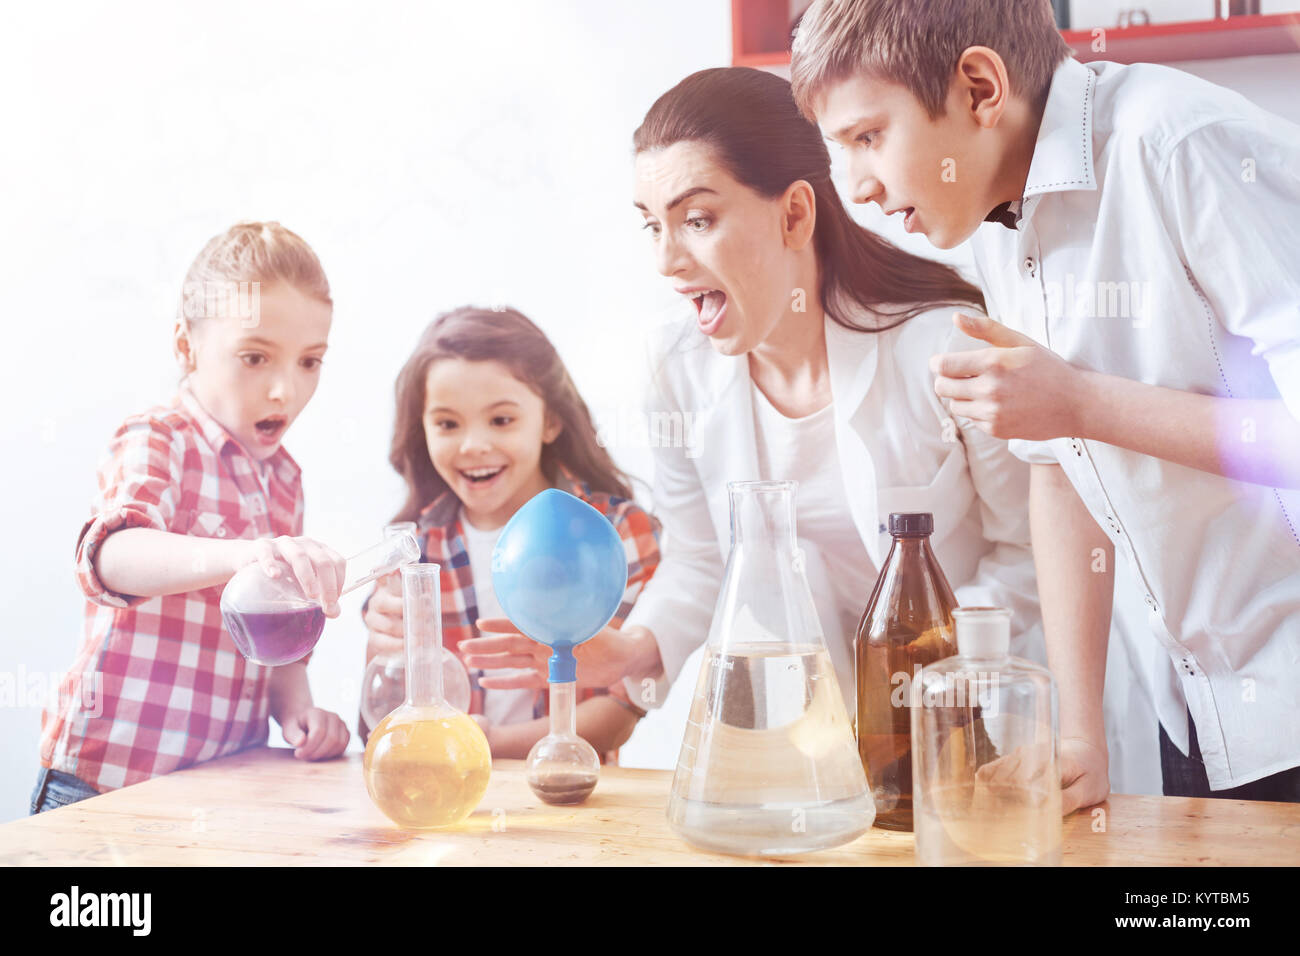 Maybe it was the wrong decision. Frightened little chemists and their teacher worrying about their dubious idea - Stock Image